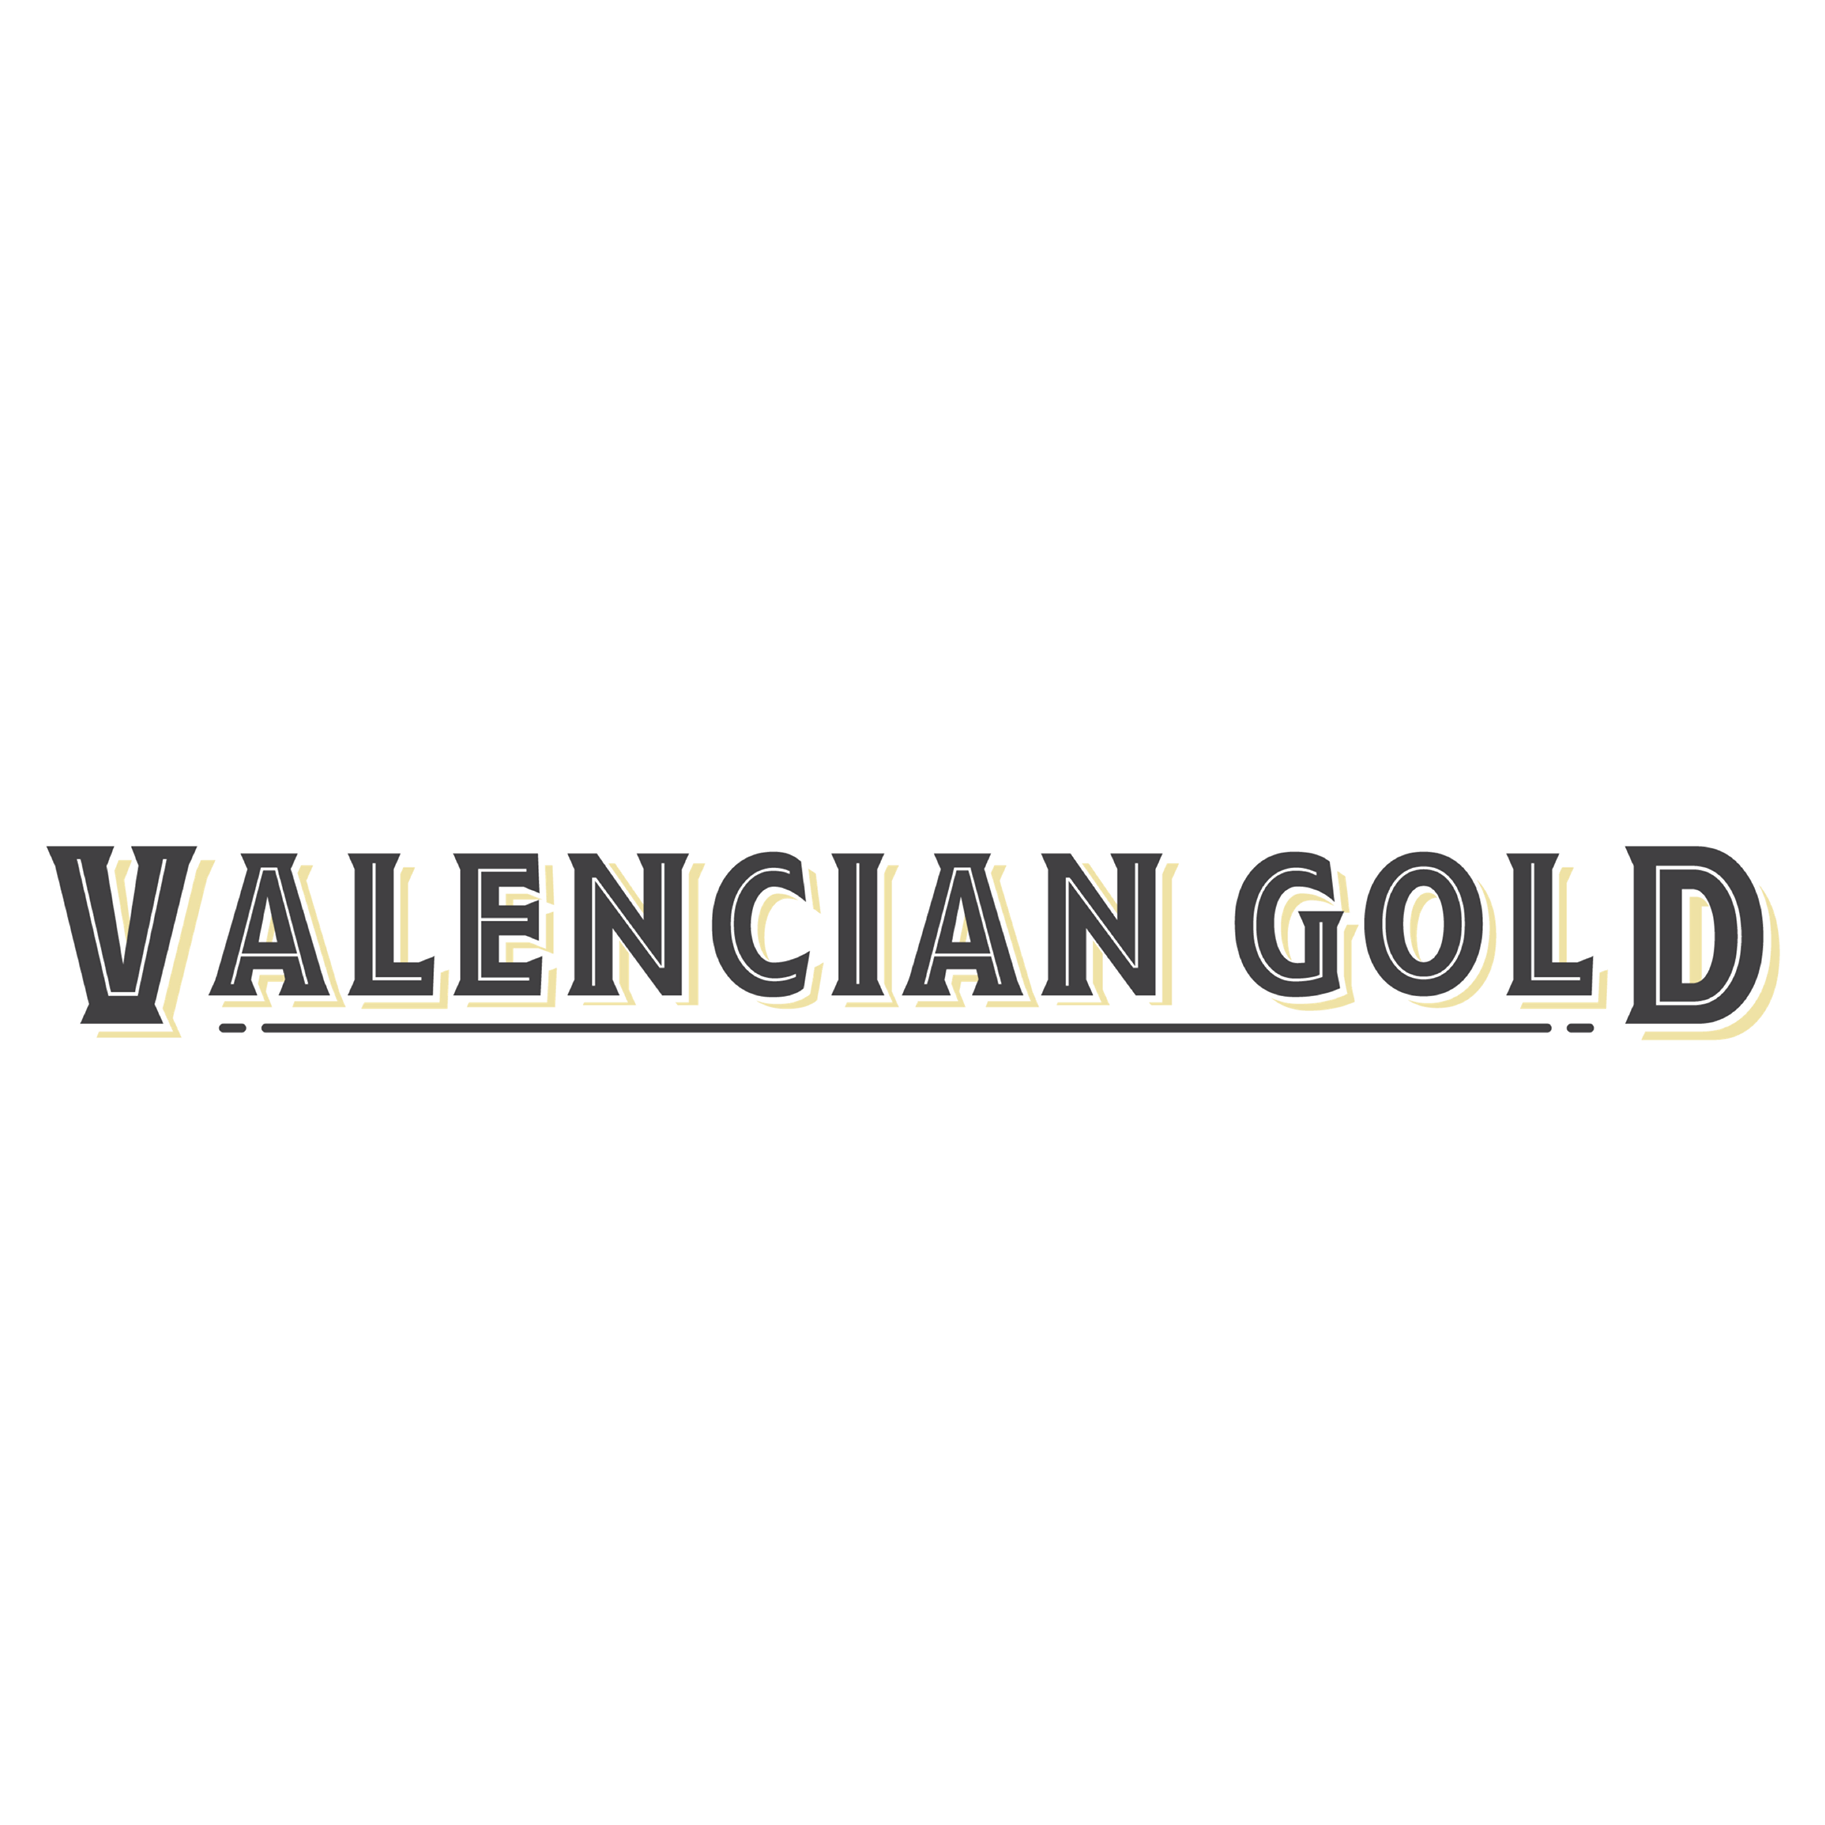 VALENCIAN GOLD.png